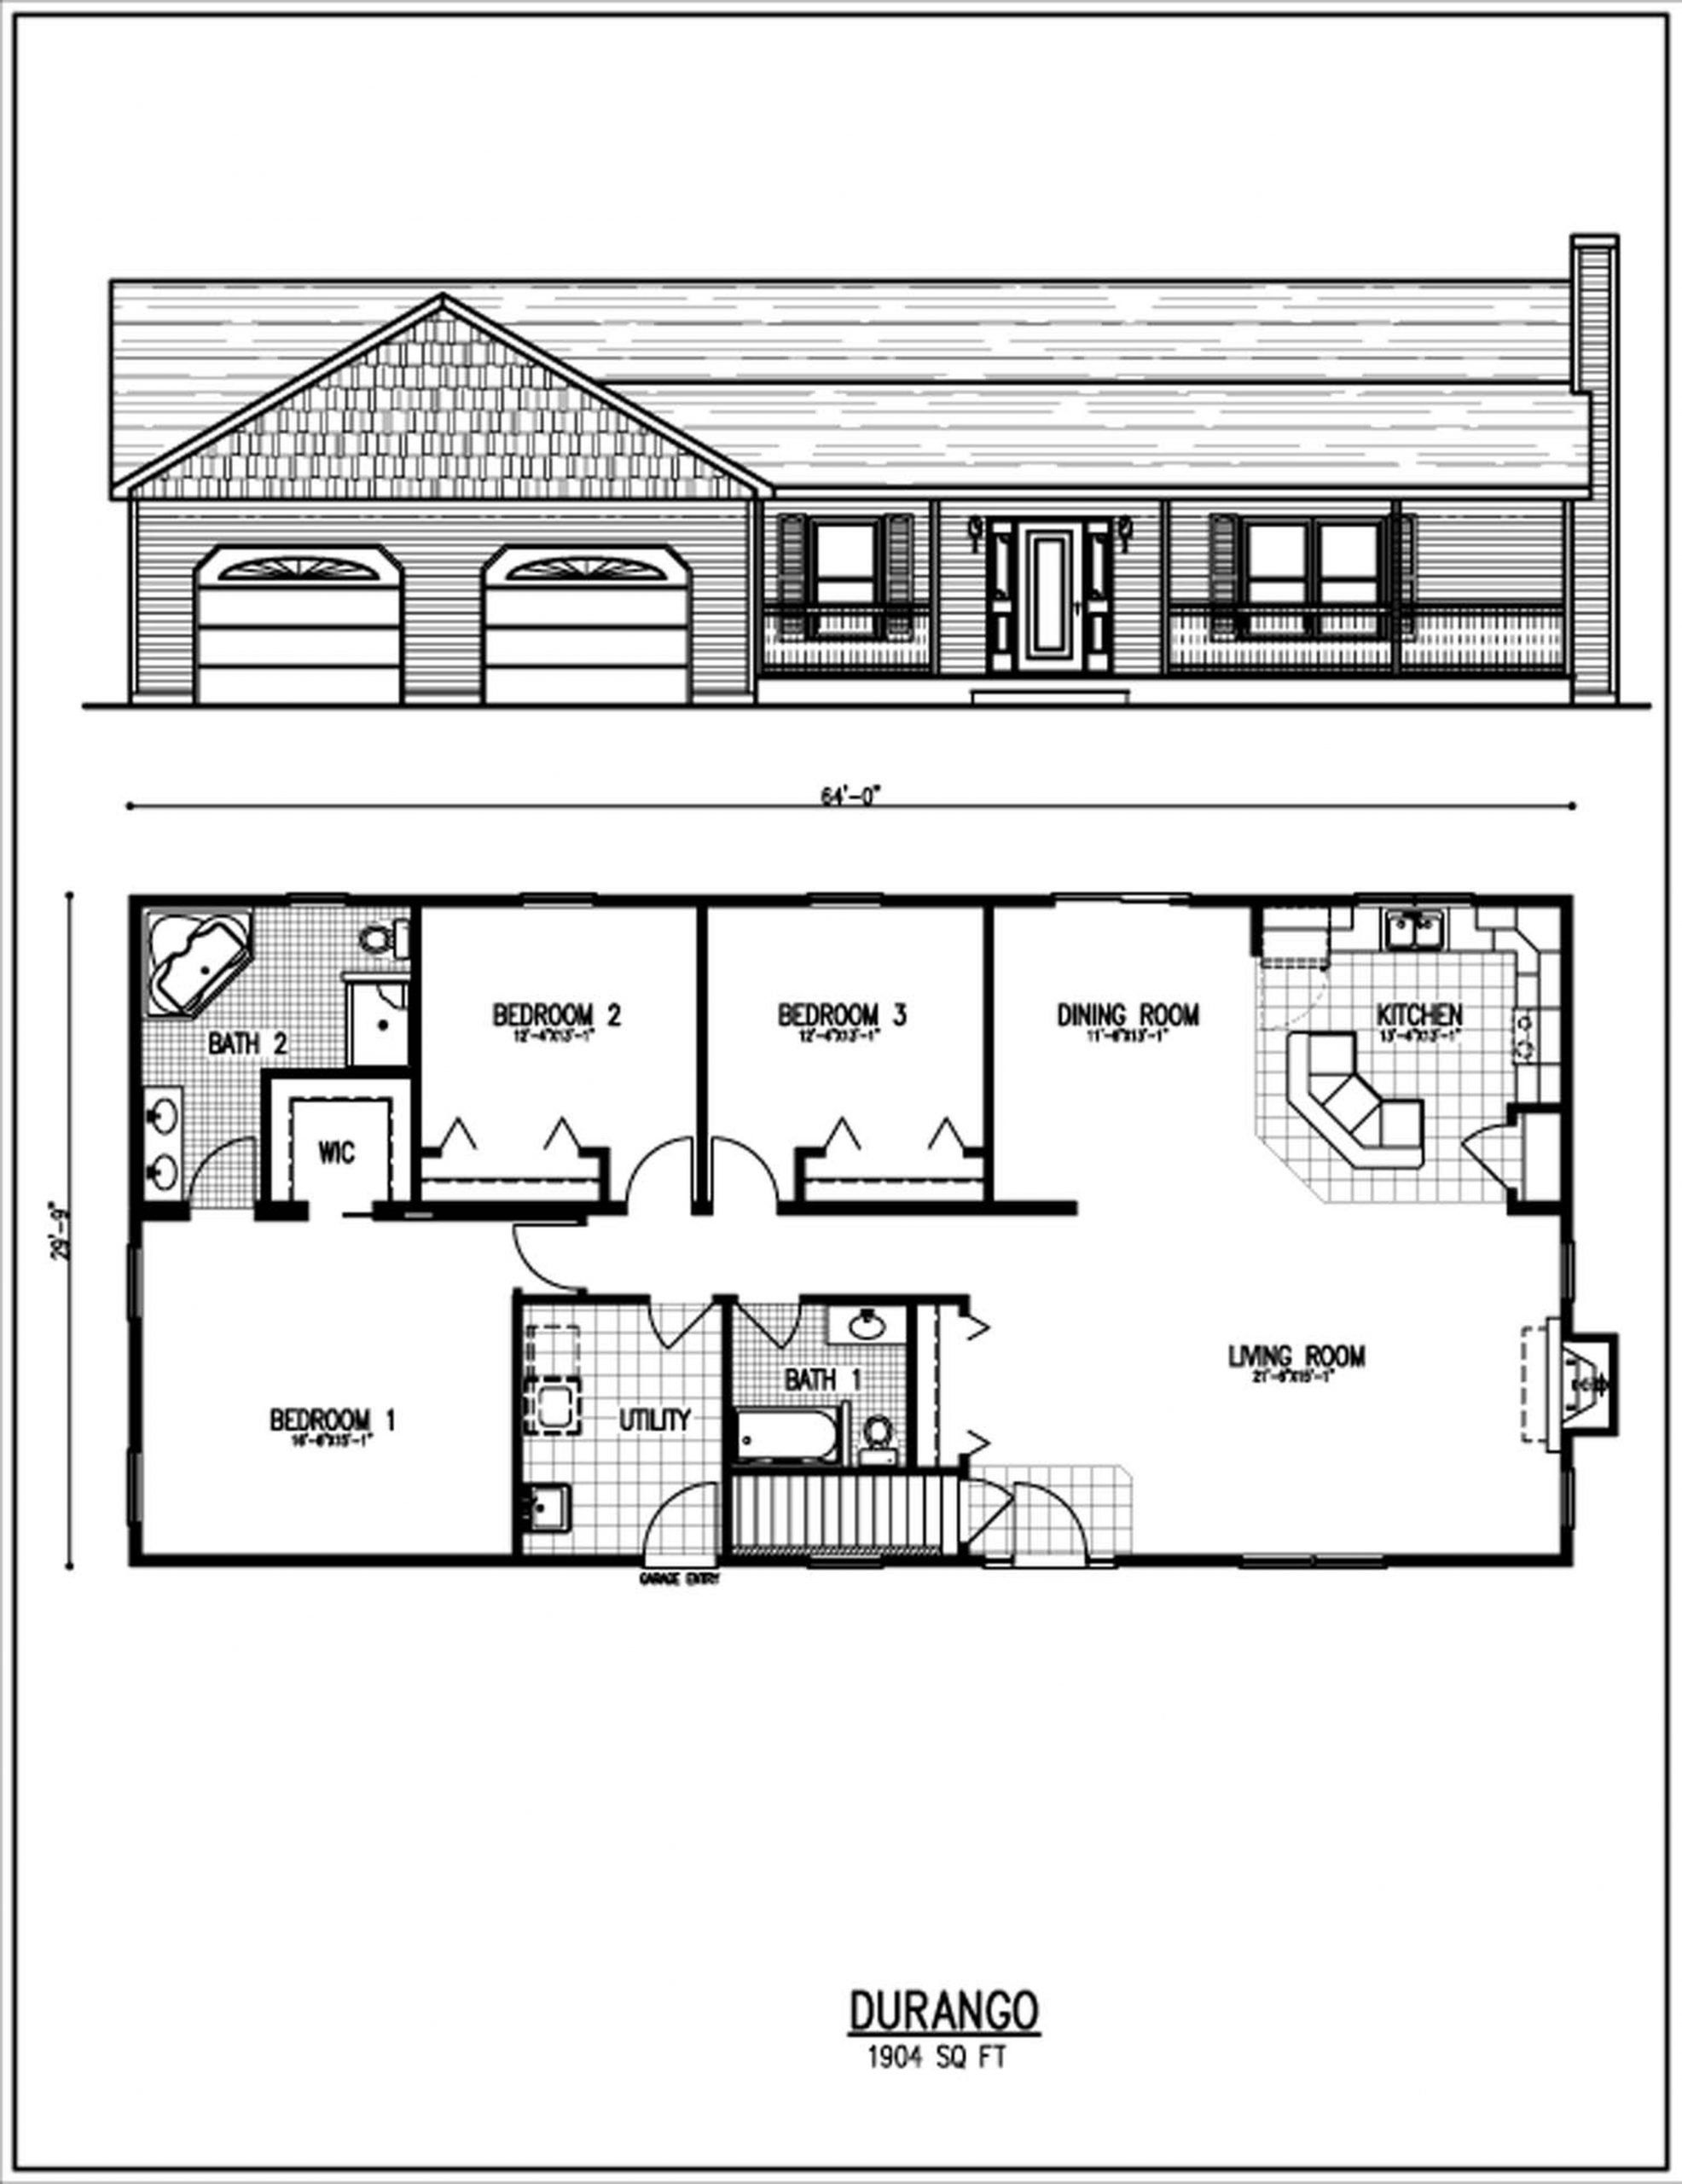 Modern House Designs Floor Plans Uk Architectures Stone Cottage House Floor Plans 2 Be Country Style House Plans Ranch Home Floor Plans Ranch House Floor Plans